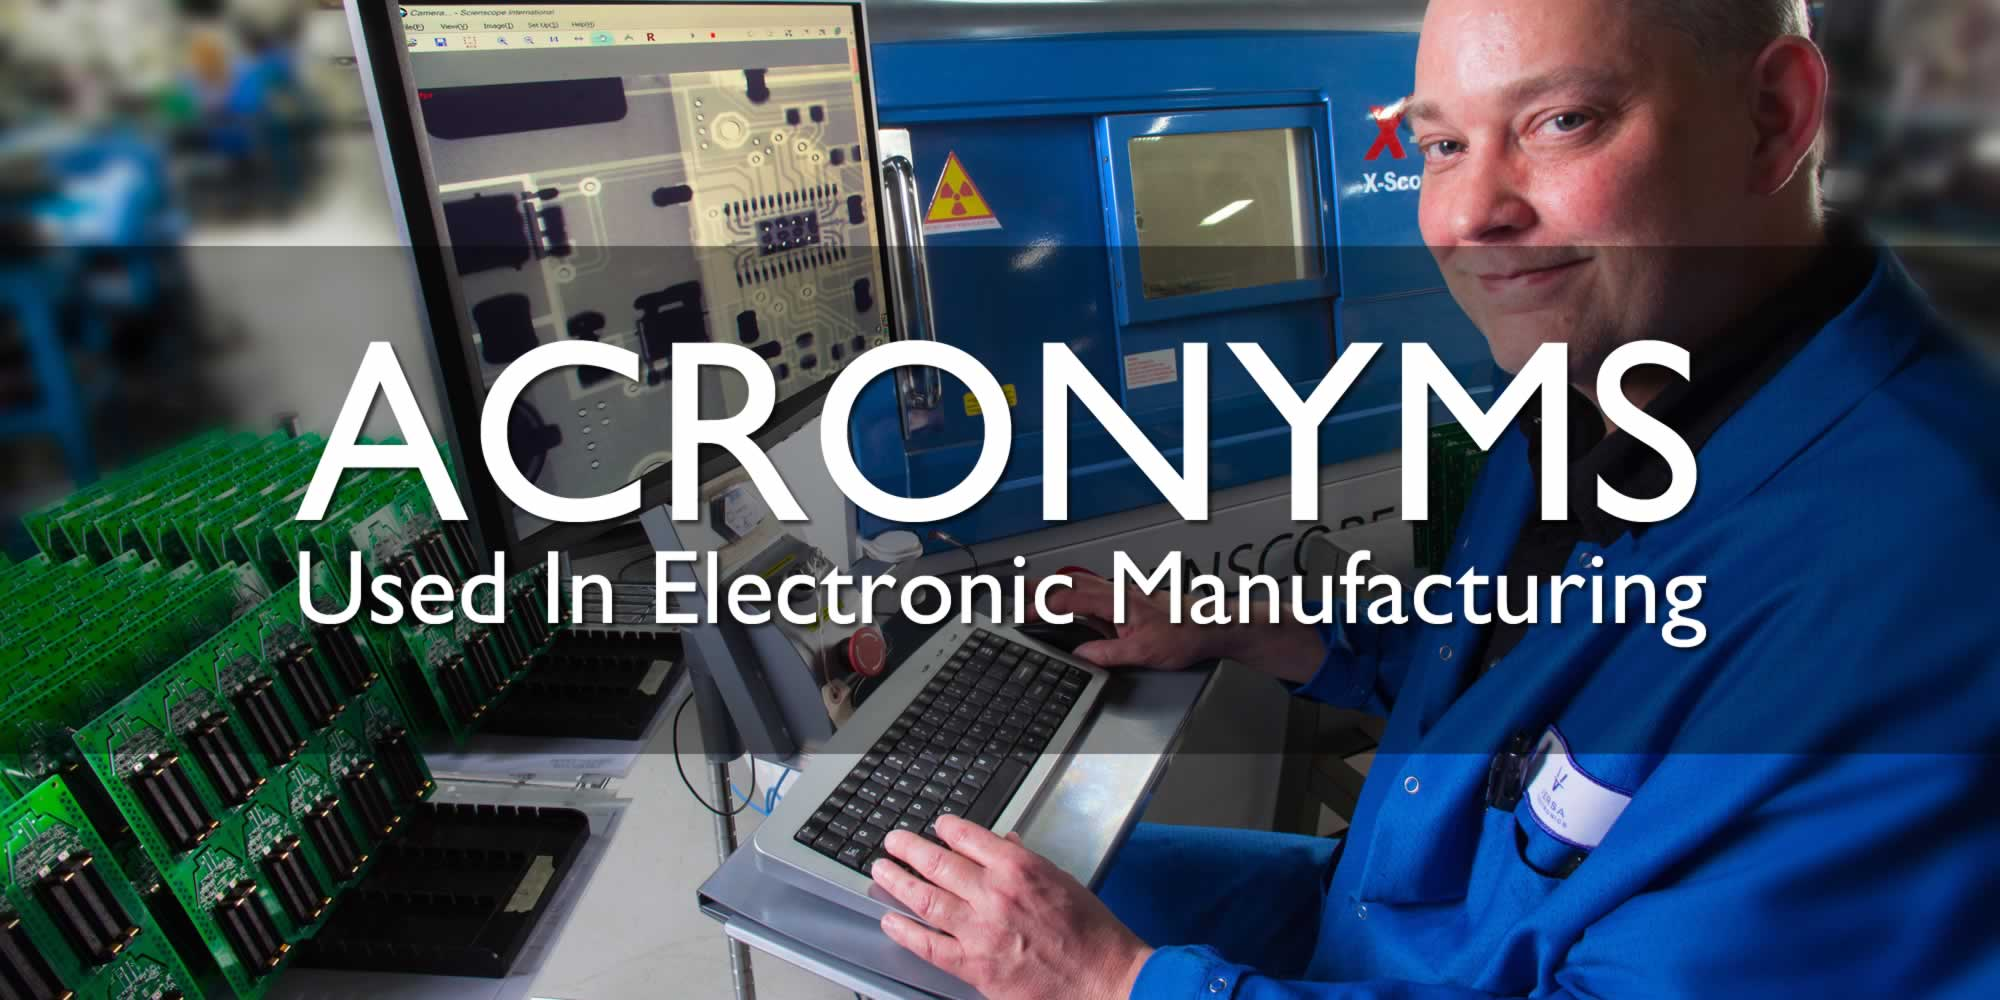 Electronic Manufacturing Acronyms You Need To Know - PCB